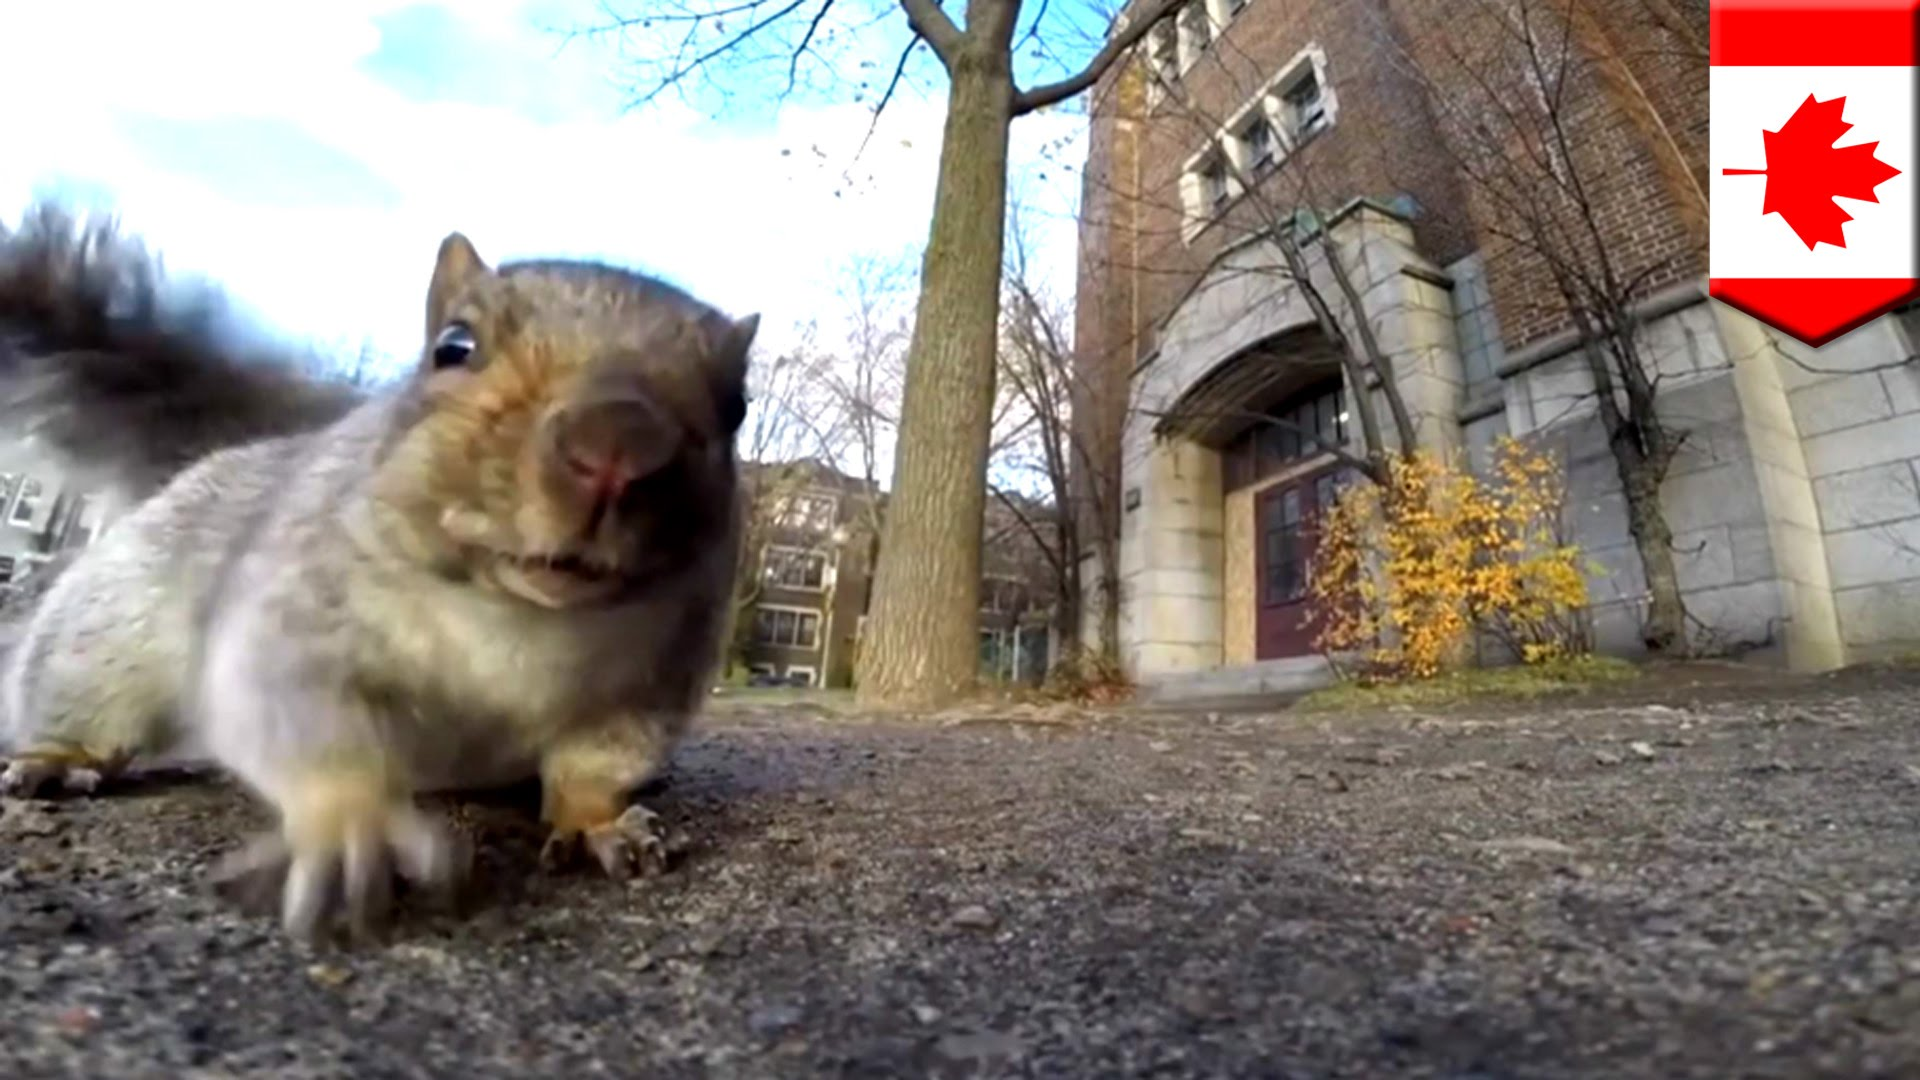 A SQUIRREL TAKES US ON A TOUR OF THE TREES (video)